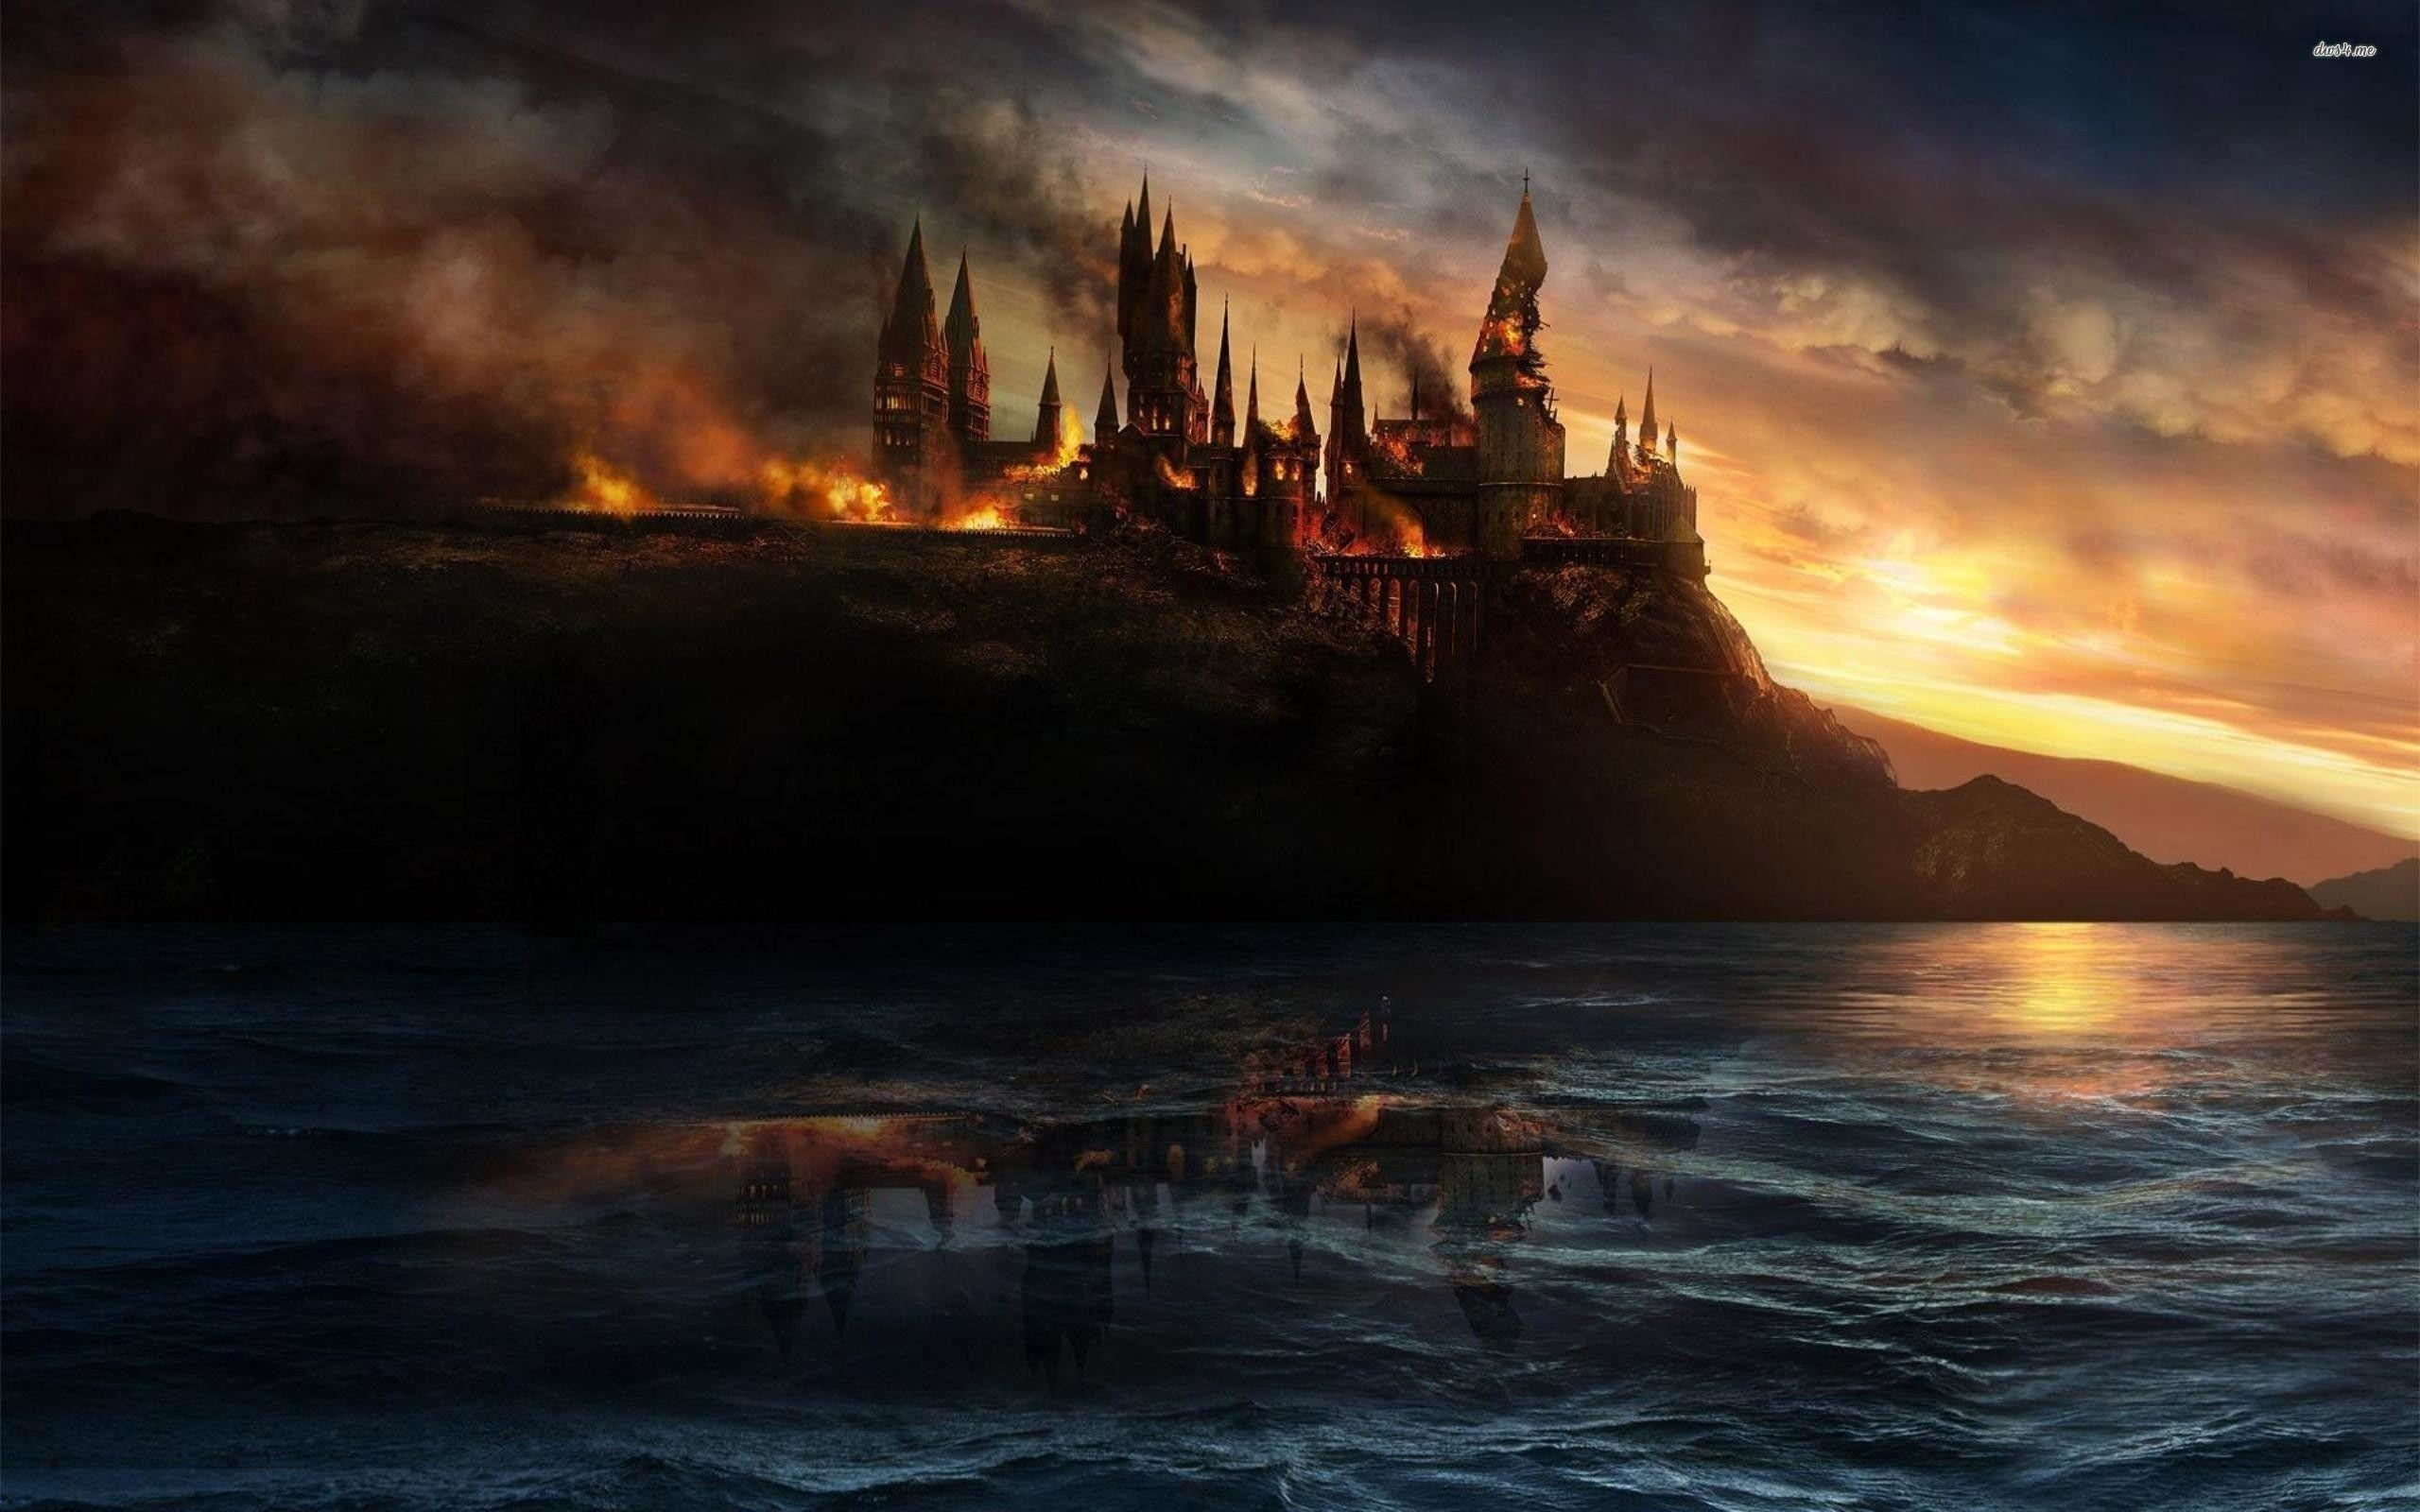 Res: 2560x1600, Harry Potter And The Deathly Hallows Symbol Wallpaper